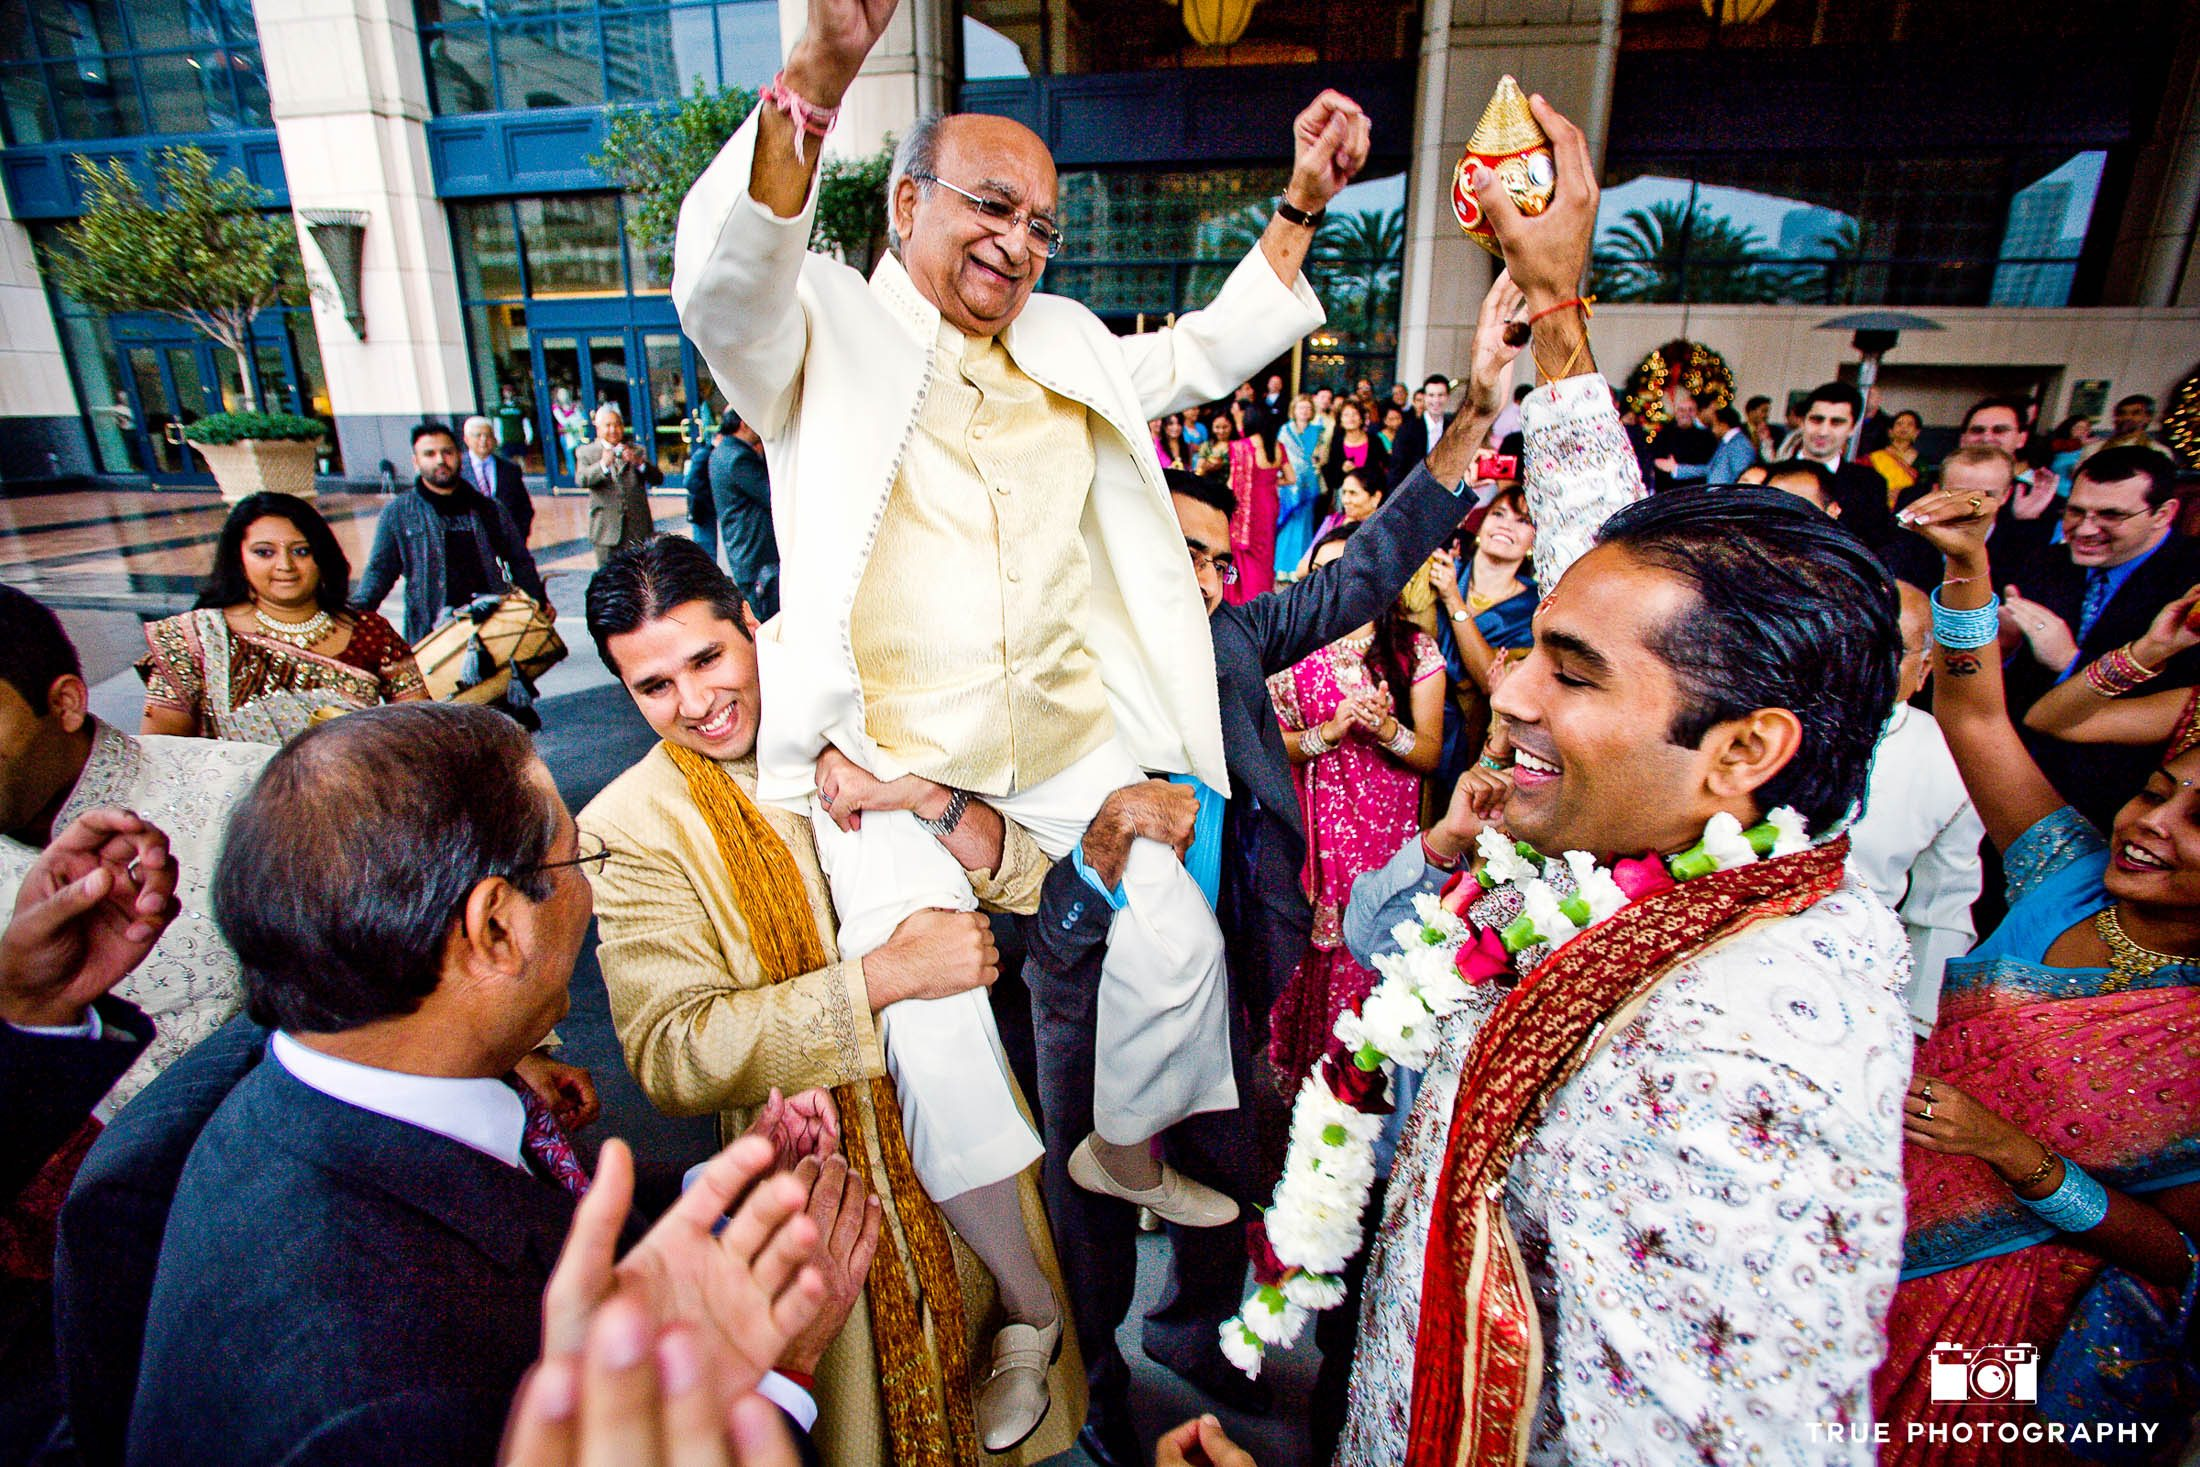 Guests lift up Groom's Father during Indian wedding